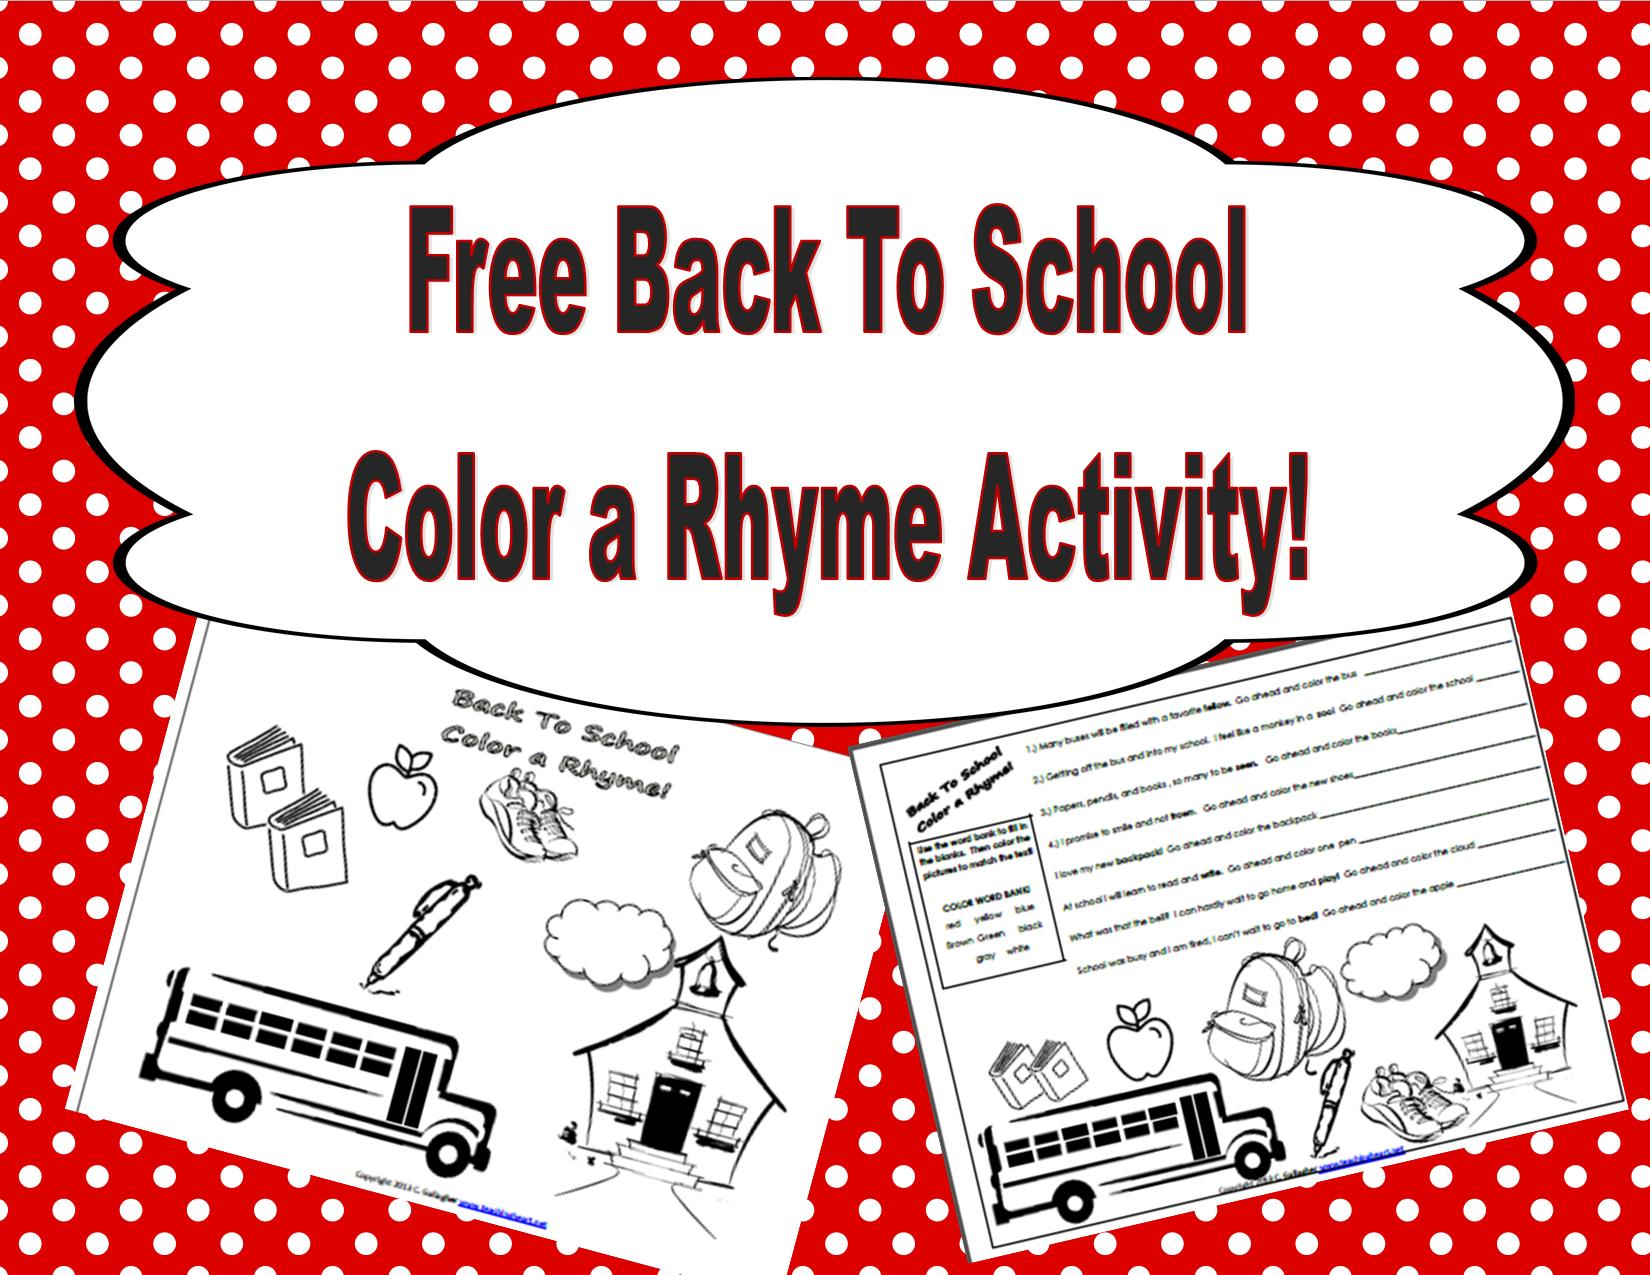 Printables Free Printable Back To School Worksheets back to school printables activity sheets color a rhyme free at teaching heart